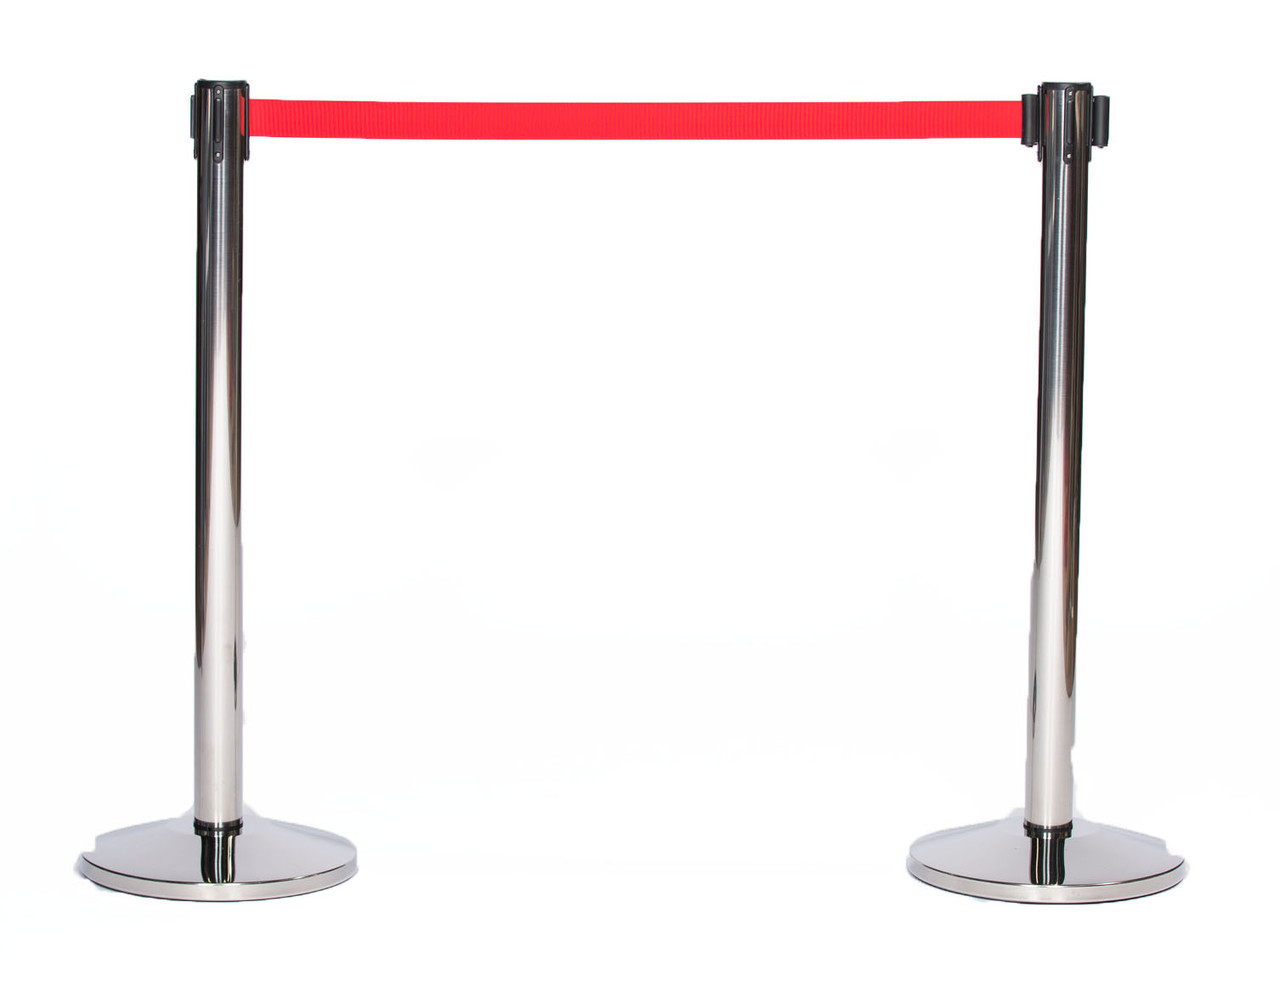 Top Selling Pair of Chrome or Stainless Retractable Belt Stanchions with a 10' Red Belt